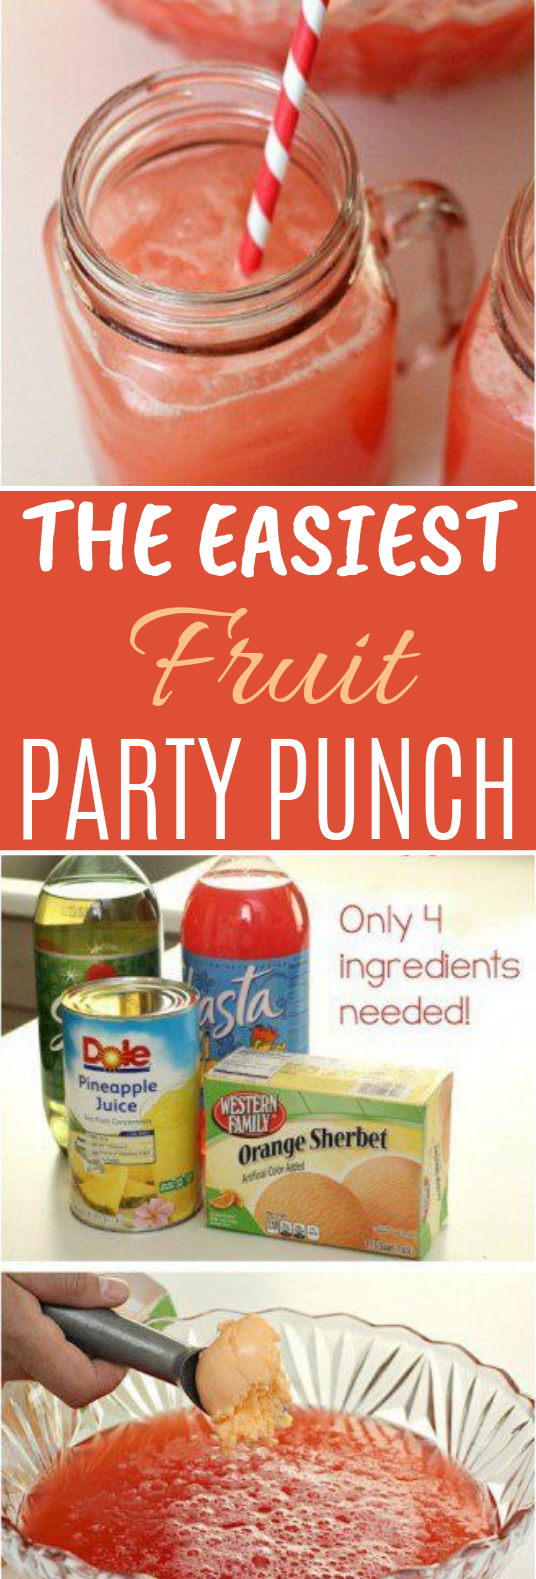 The Easiest Fruit Party Punch #drink #summer